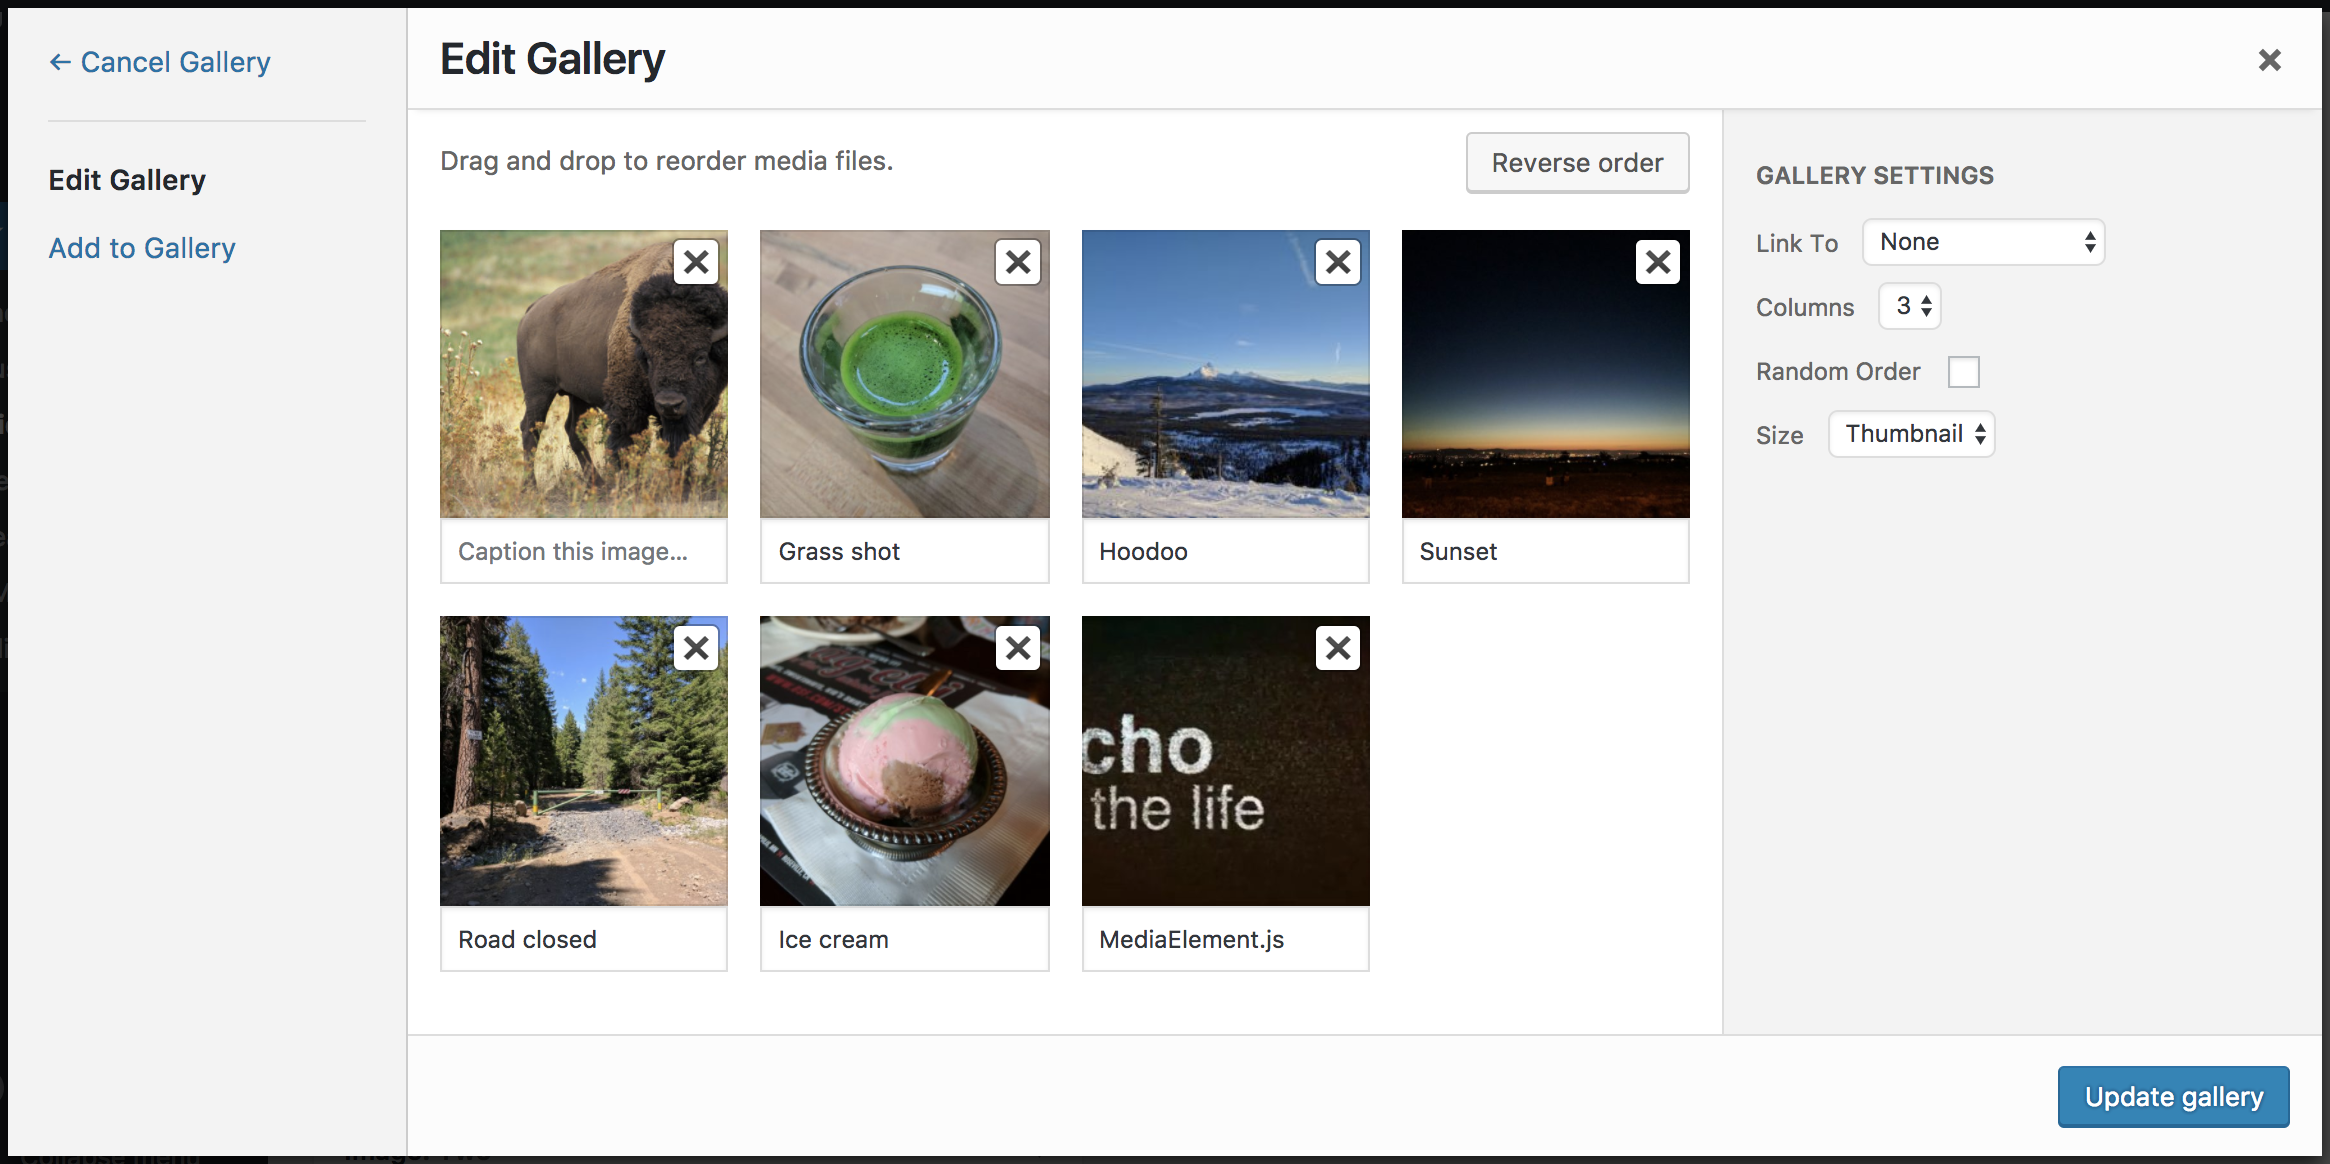 modifying order of images and gallery properties